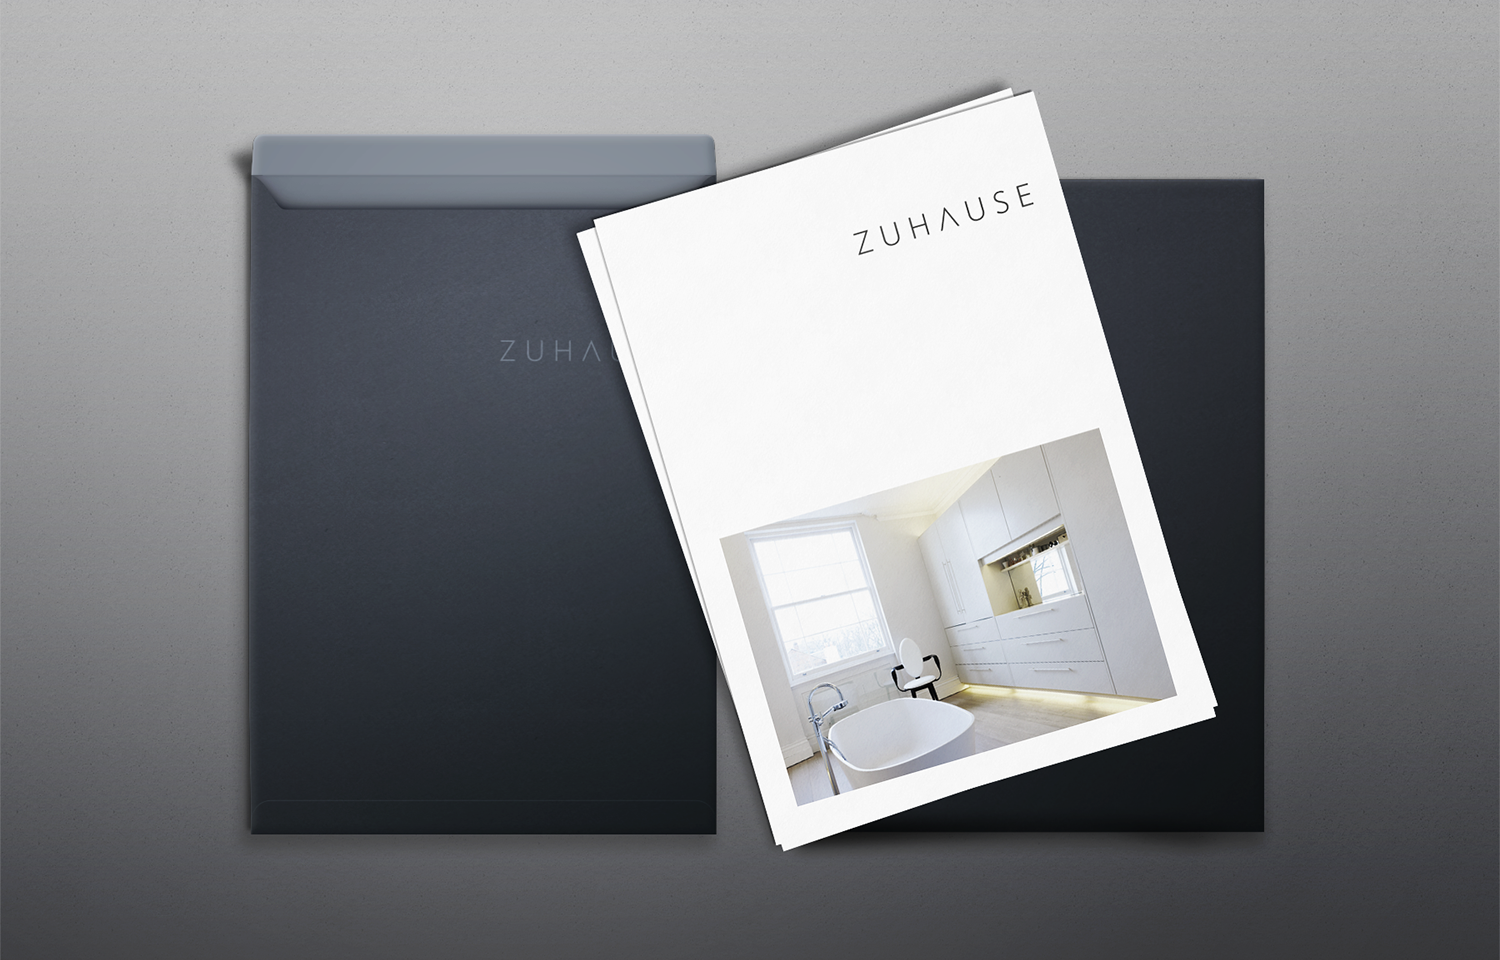 A4 marketing mail outs with branded envelope for Zuhause Architects.